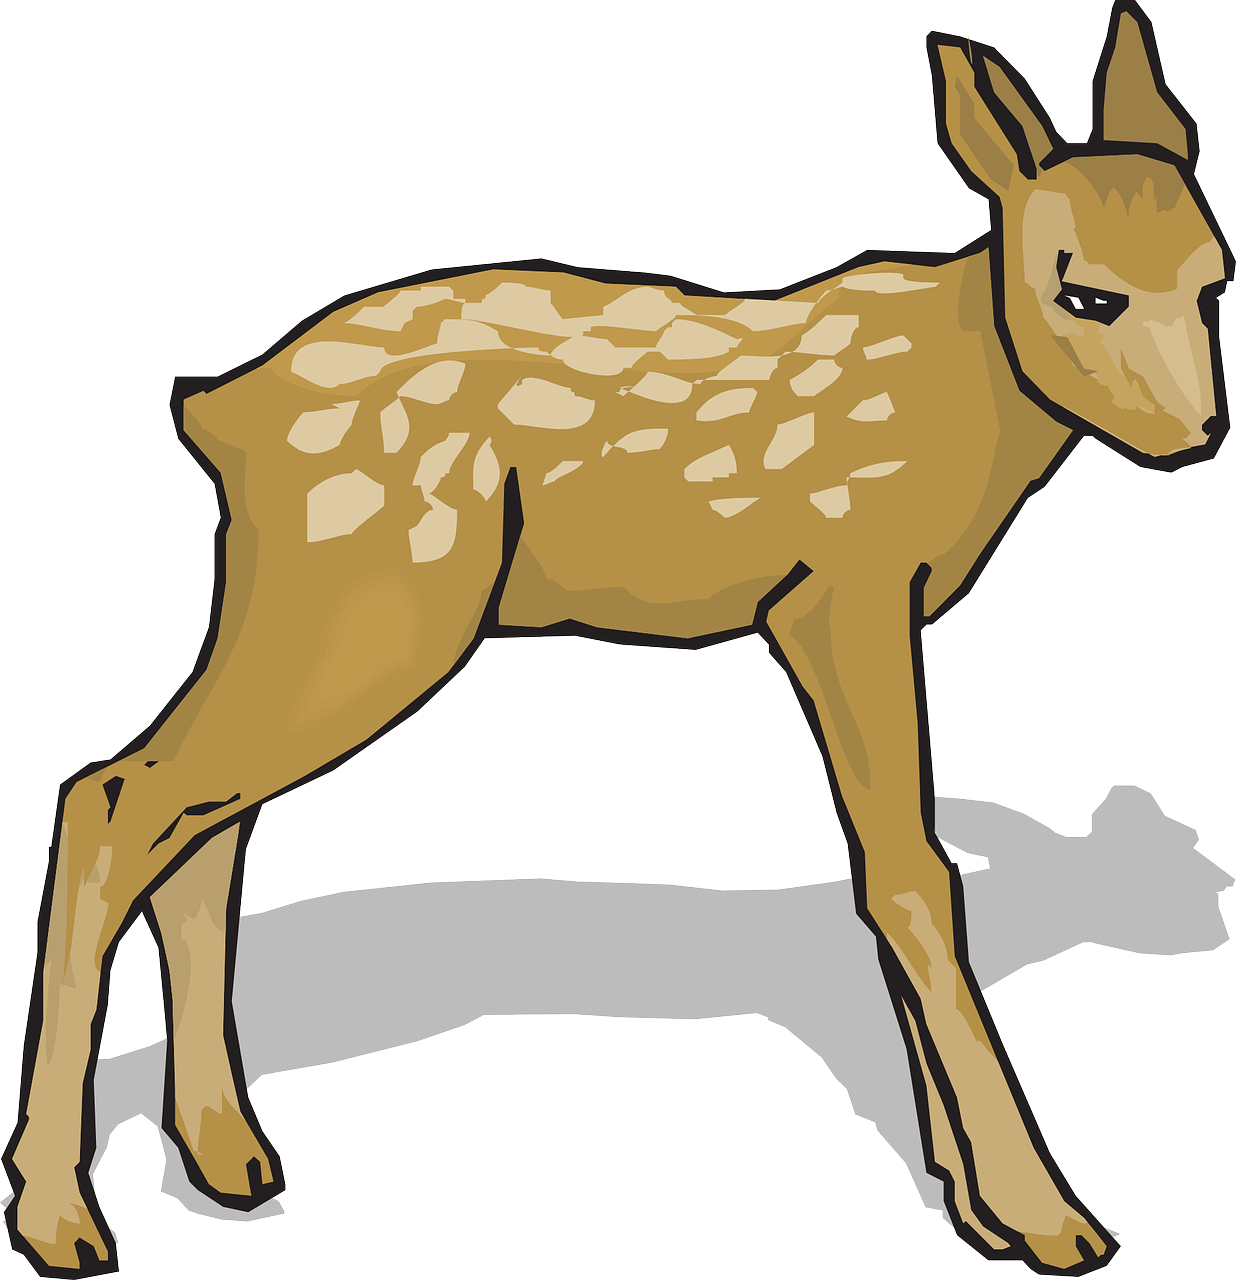 Fawn Animal Deer Free Vector Graphic On Pixabay